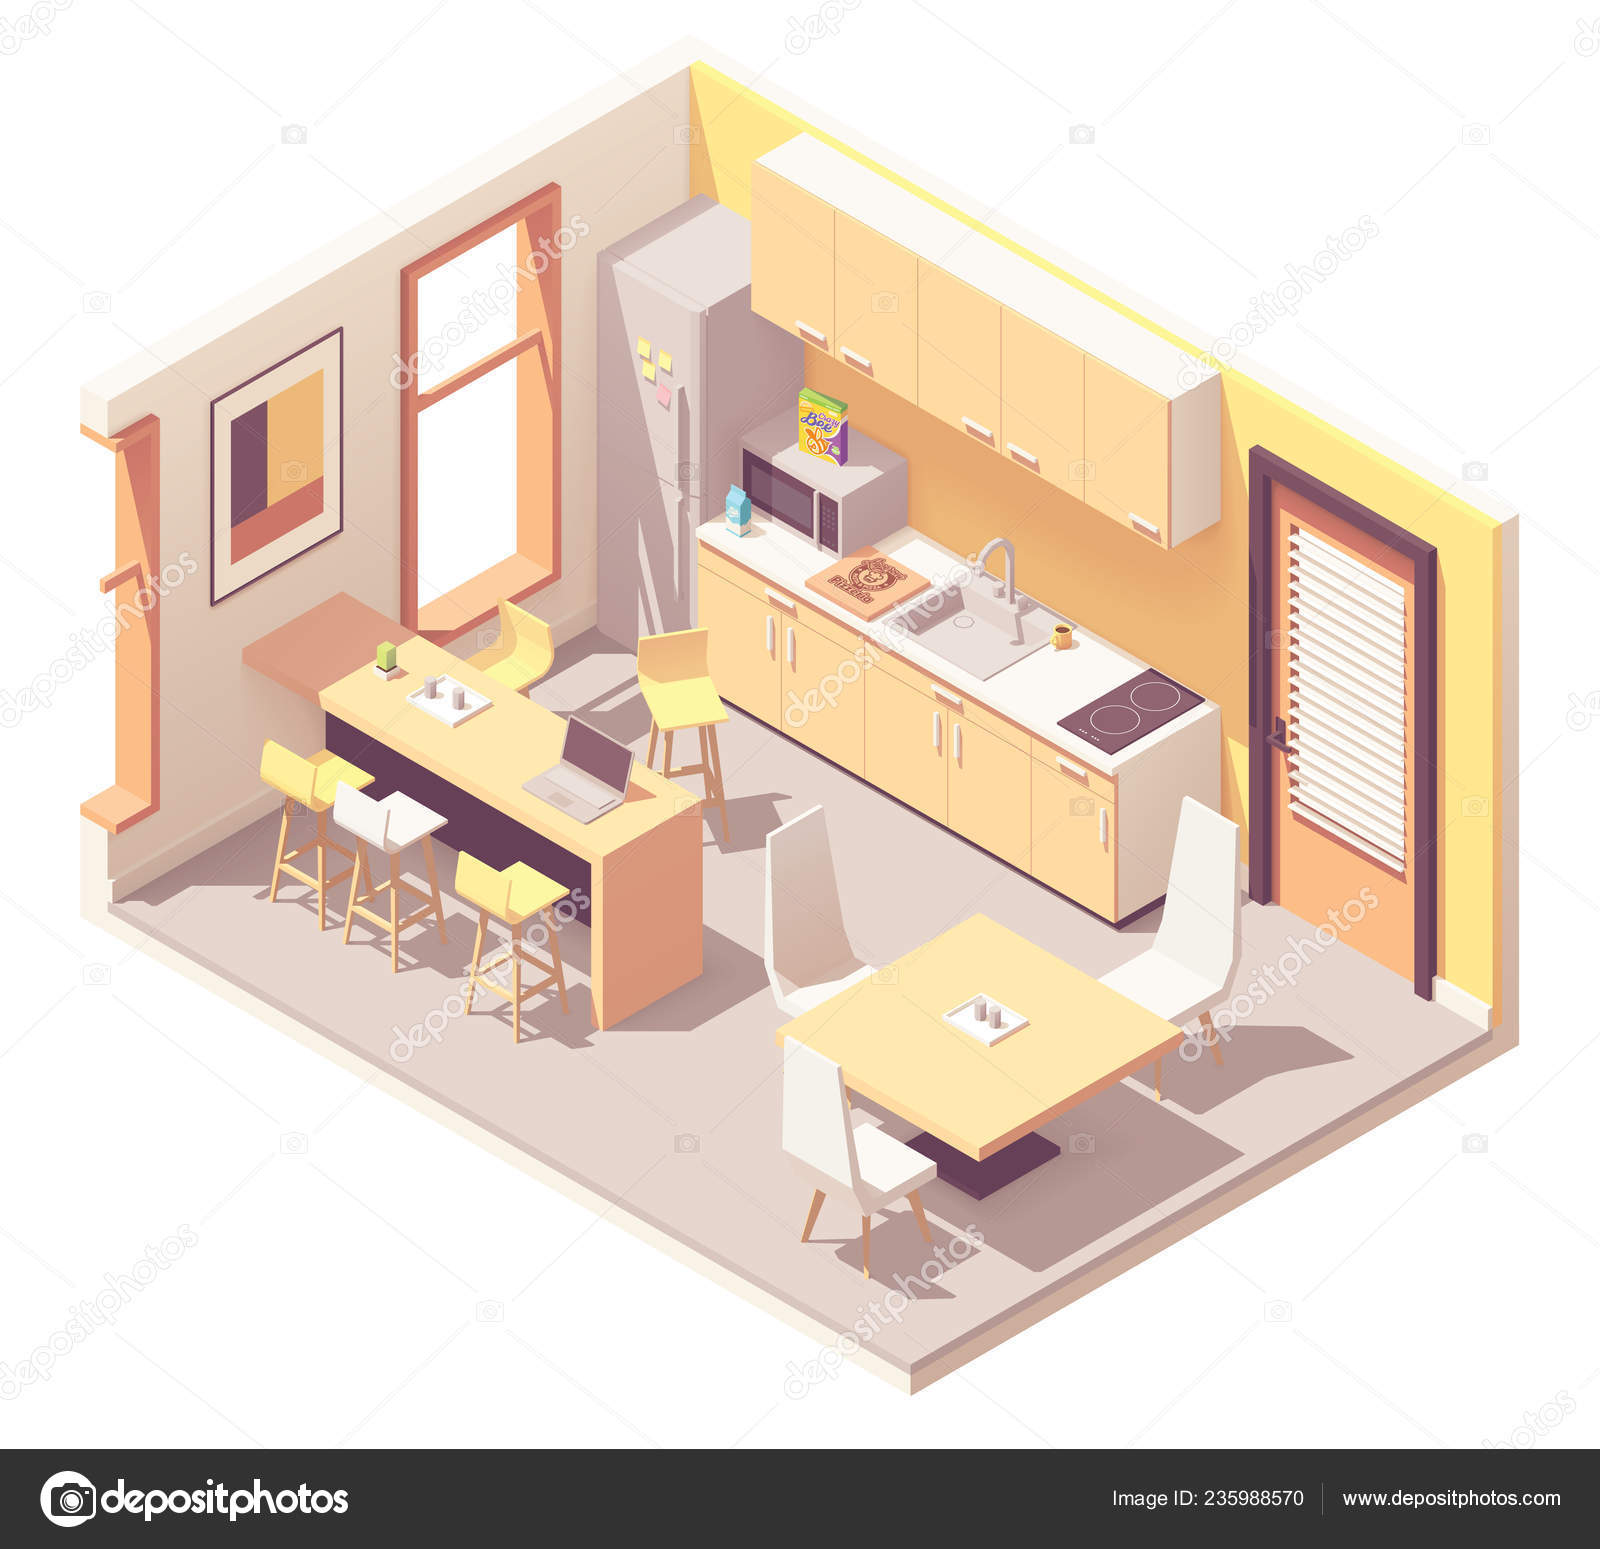 Pleasing Vector Isometric Office Break Room Stock Vector C Tele52 Interior Design Ideas Gentotryabchikinfo